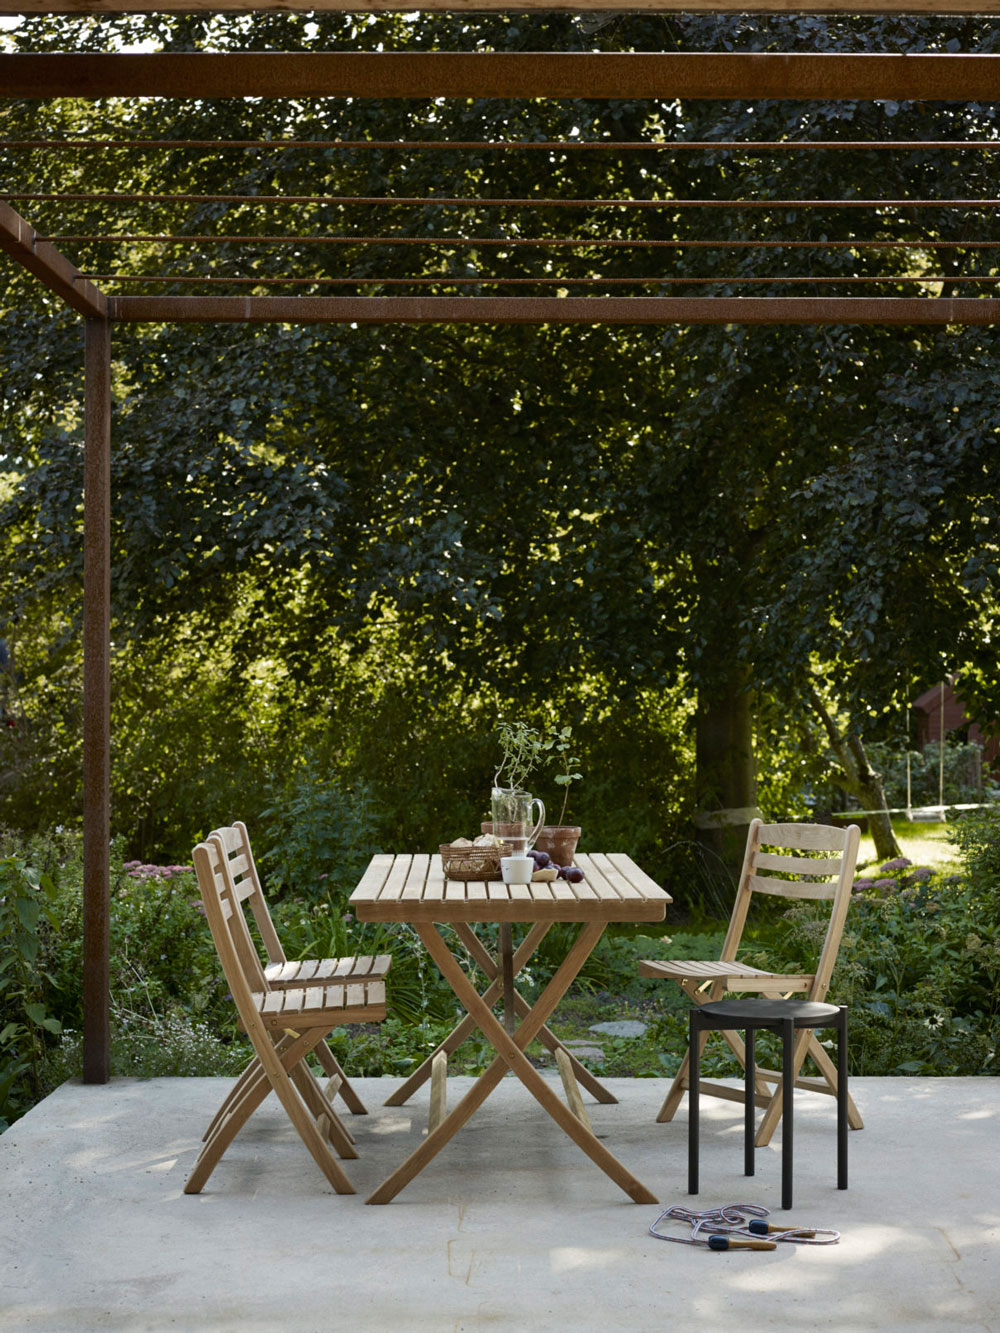 How To Care For Outdoor And Garden Teak Furniture Nordicdesign